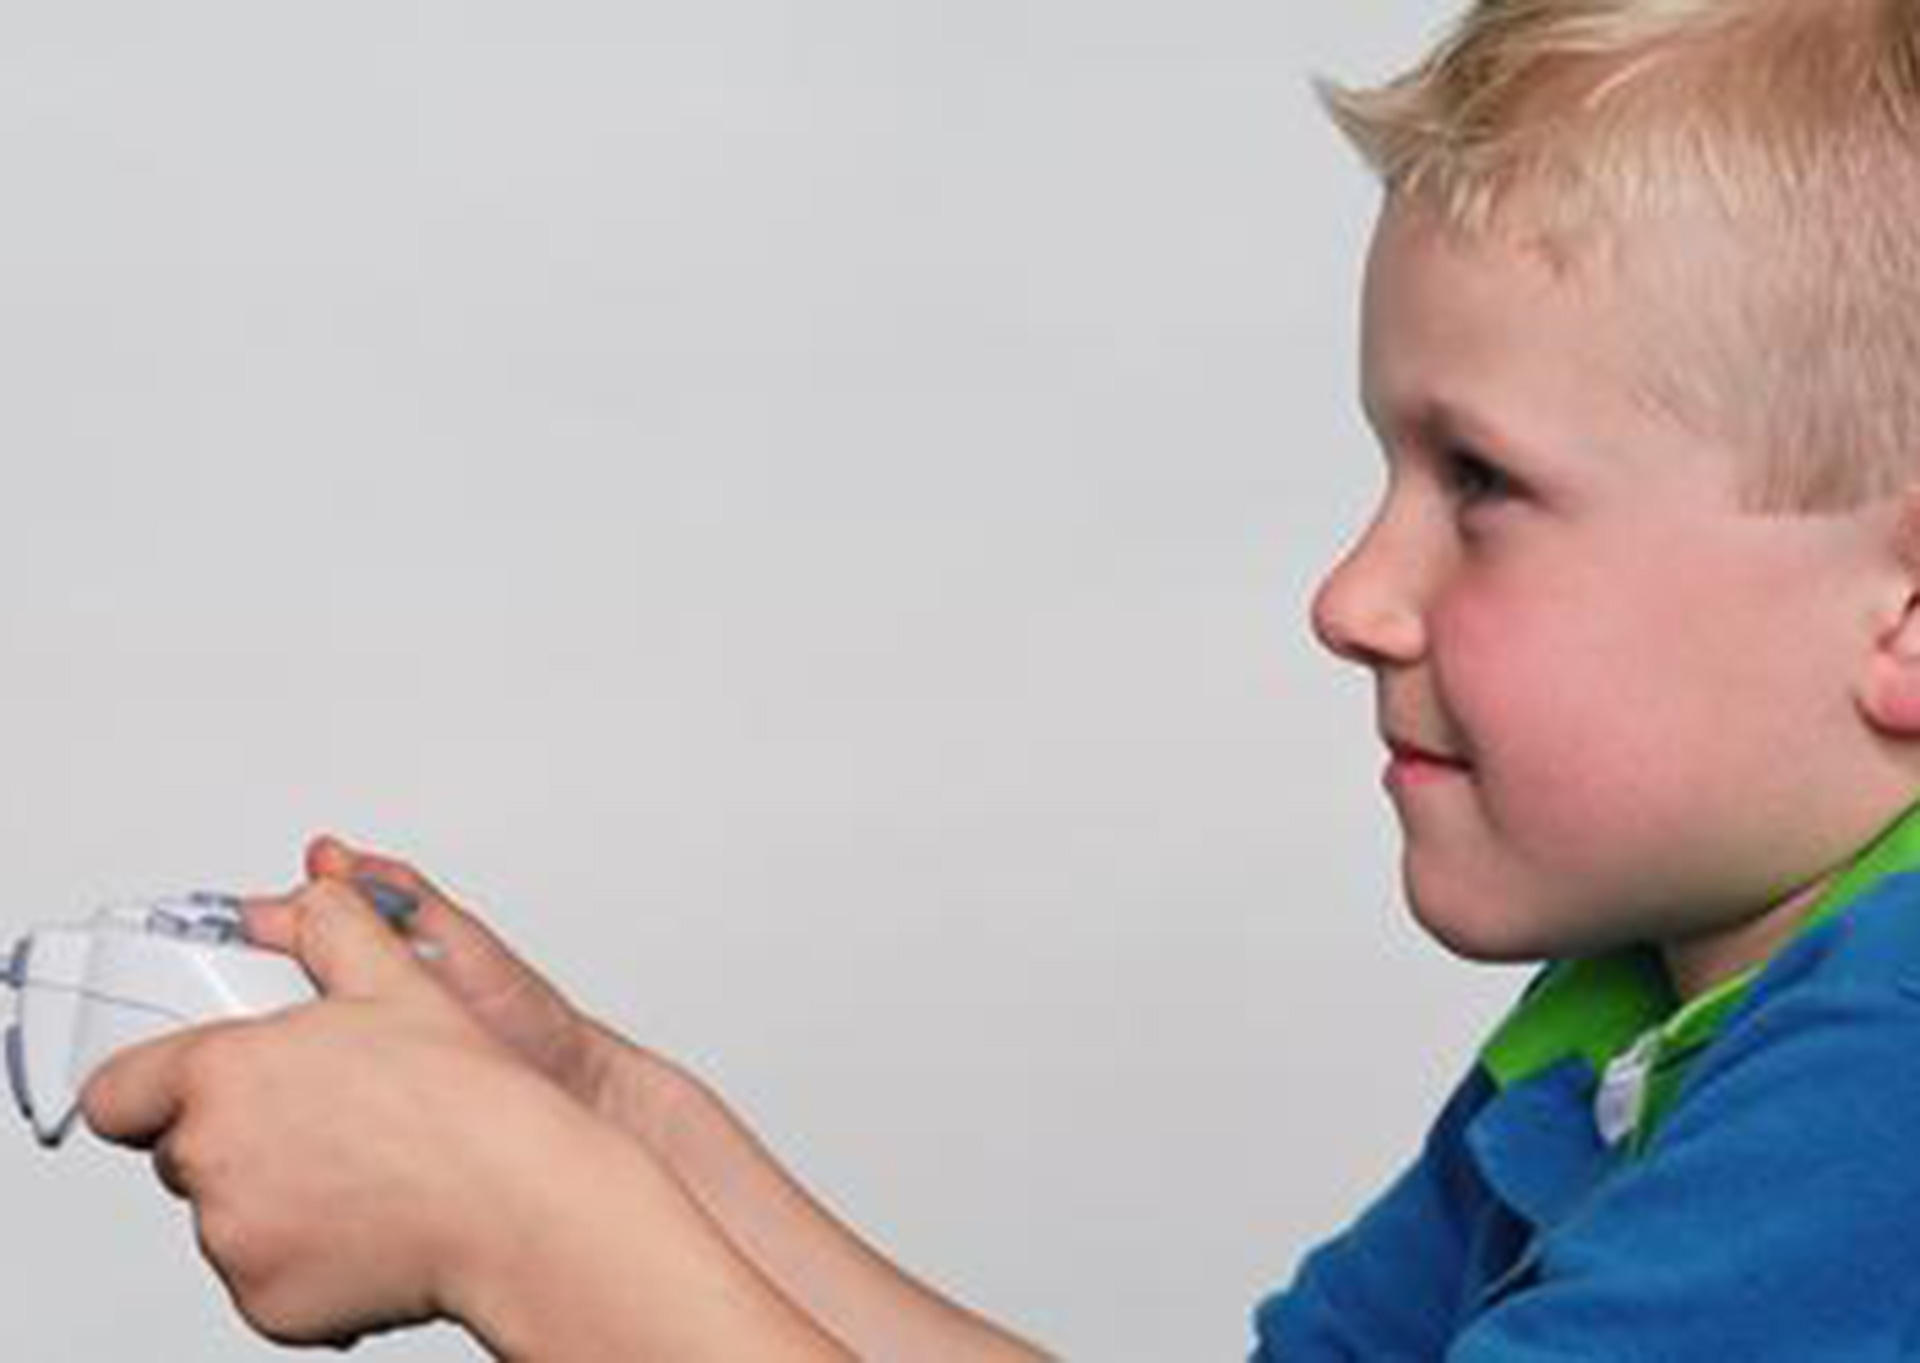 Therapeutic and Preventive Use of Video Games in Child and Adolescent Psychiatry: A Systematic Review, Frontiers in Psychiatry, February 2020